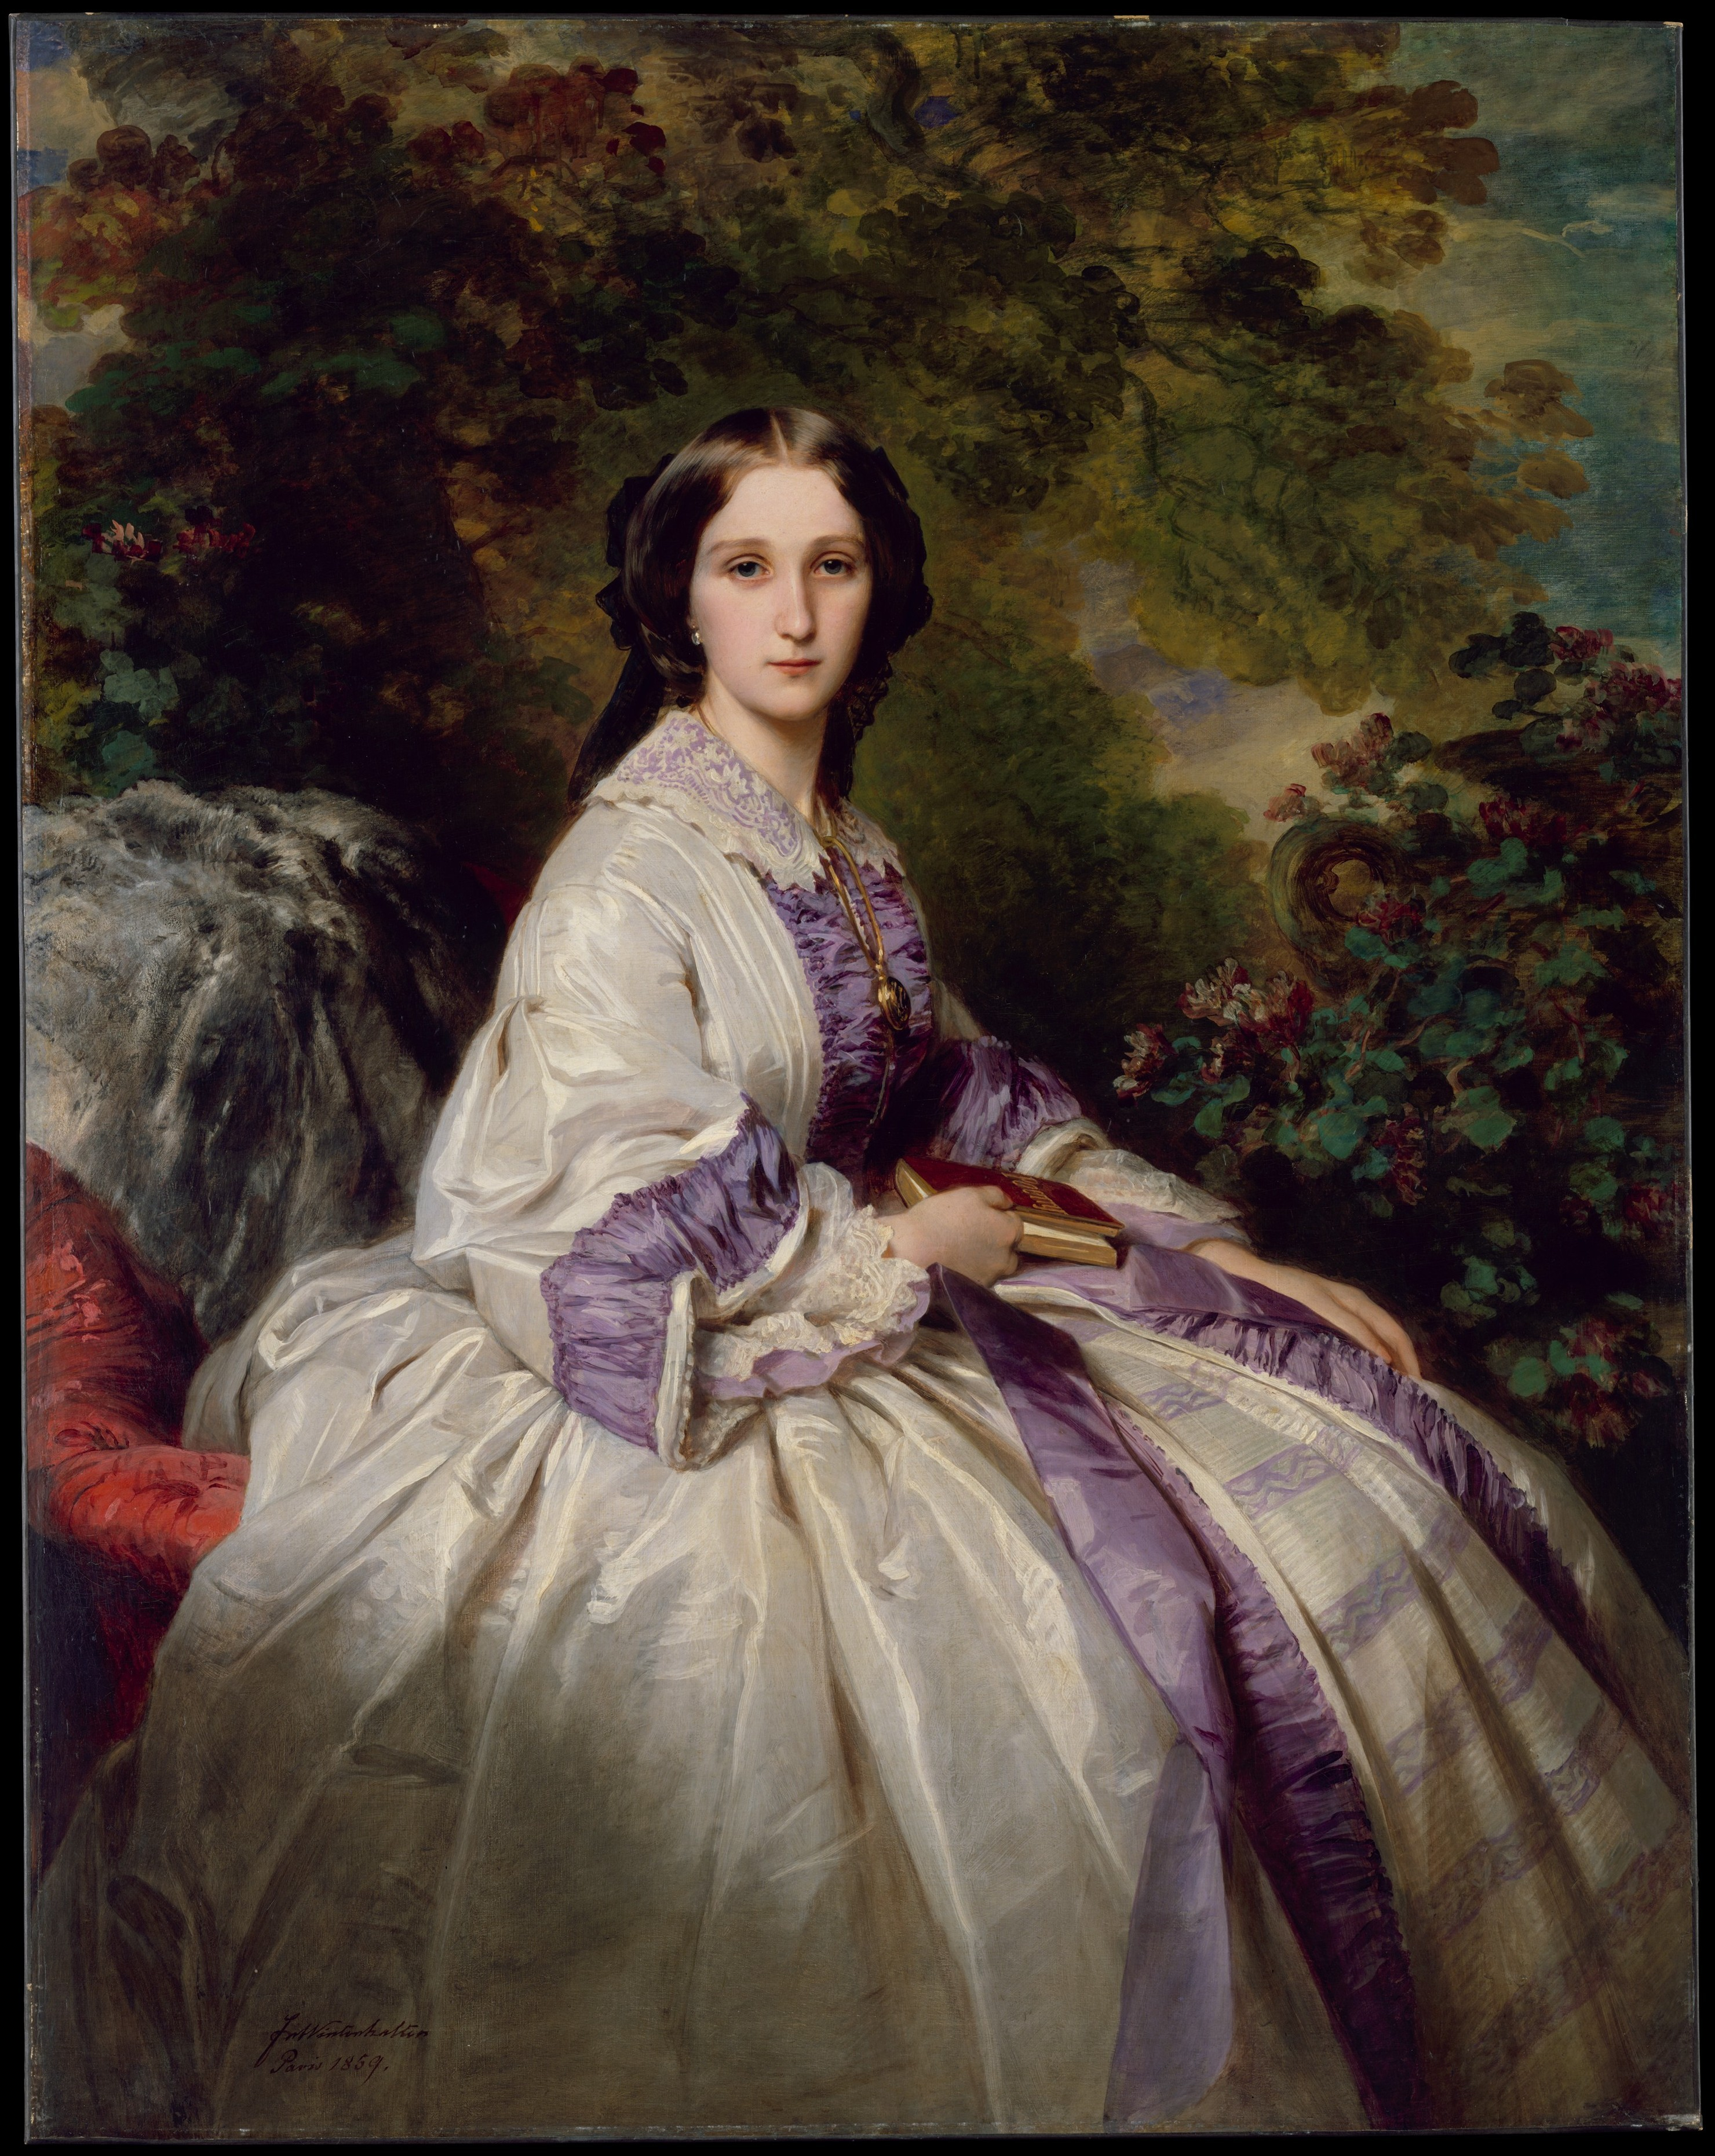 http://upload.wikimedia.org/wikipedia/commons/9/99/Franz_Xaver_Winterhalter_Countess_Alexander_Nikolaevitch_Lamsdorff.jpg